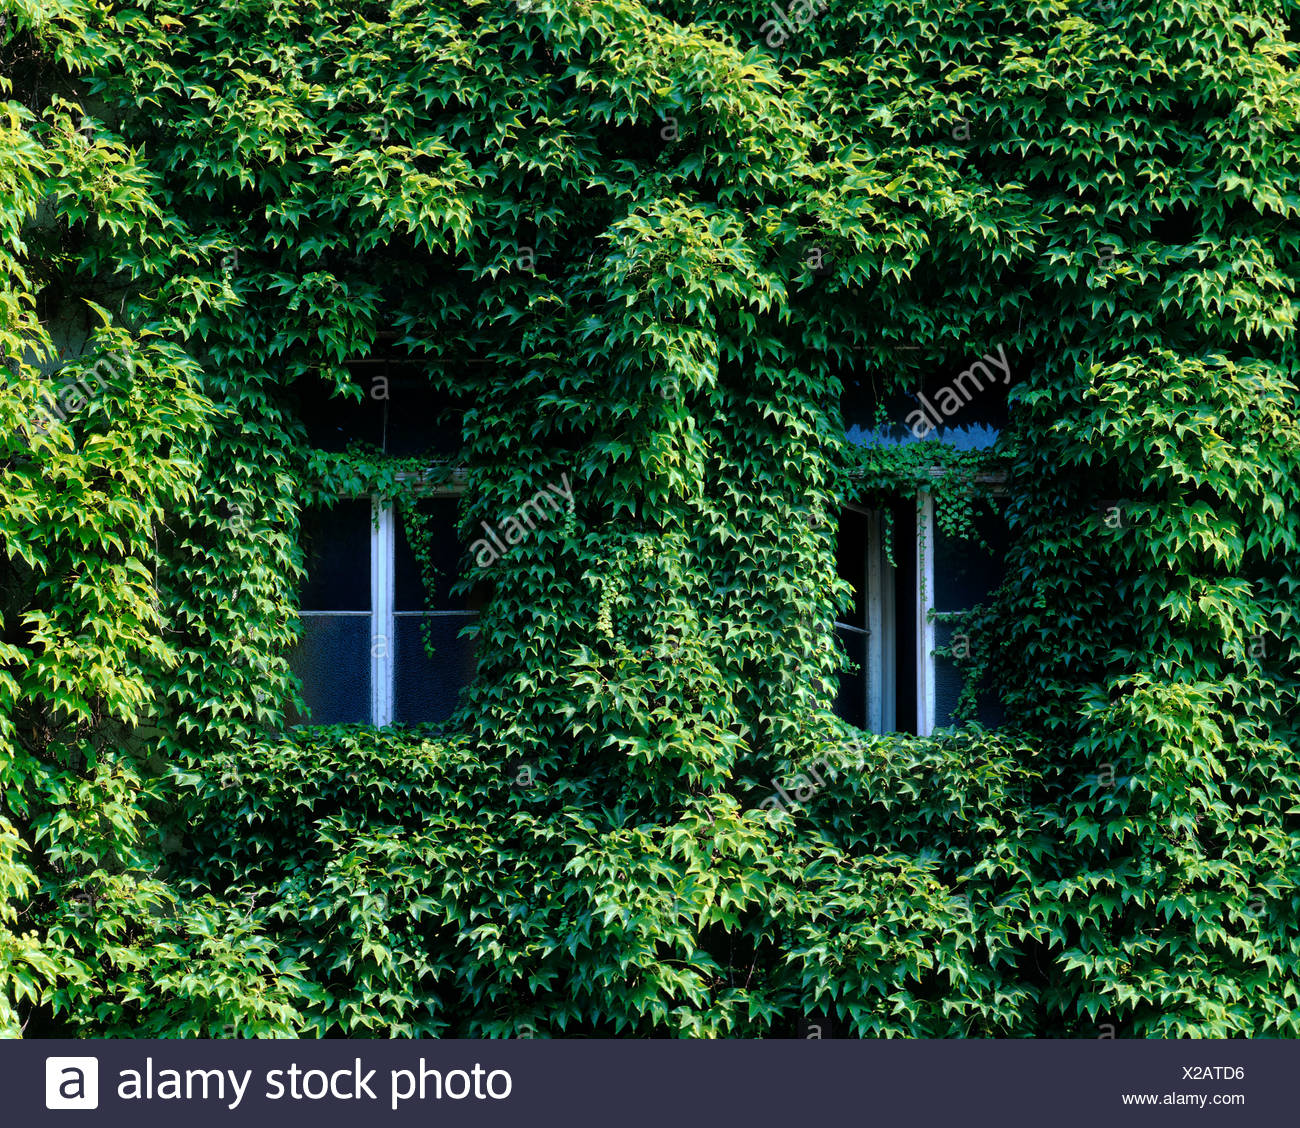 Delightful House Front Covered With Boston Ivy Or Japanese Creeper (Parthenocissus  Tricuspidata), Two Nearly